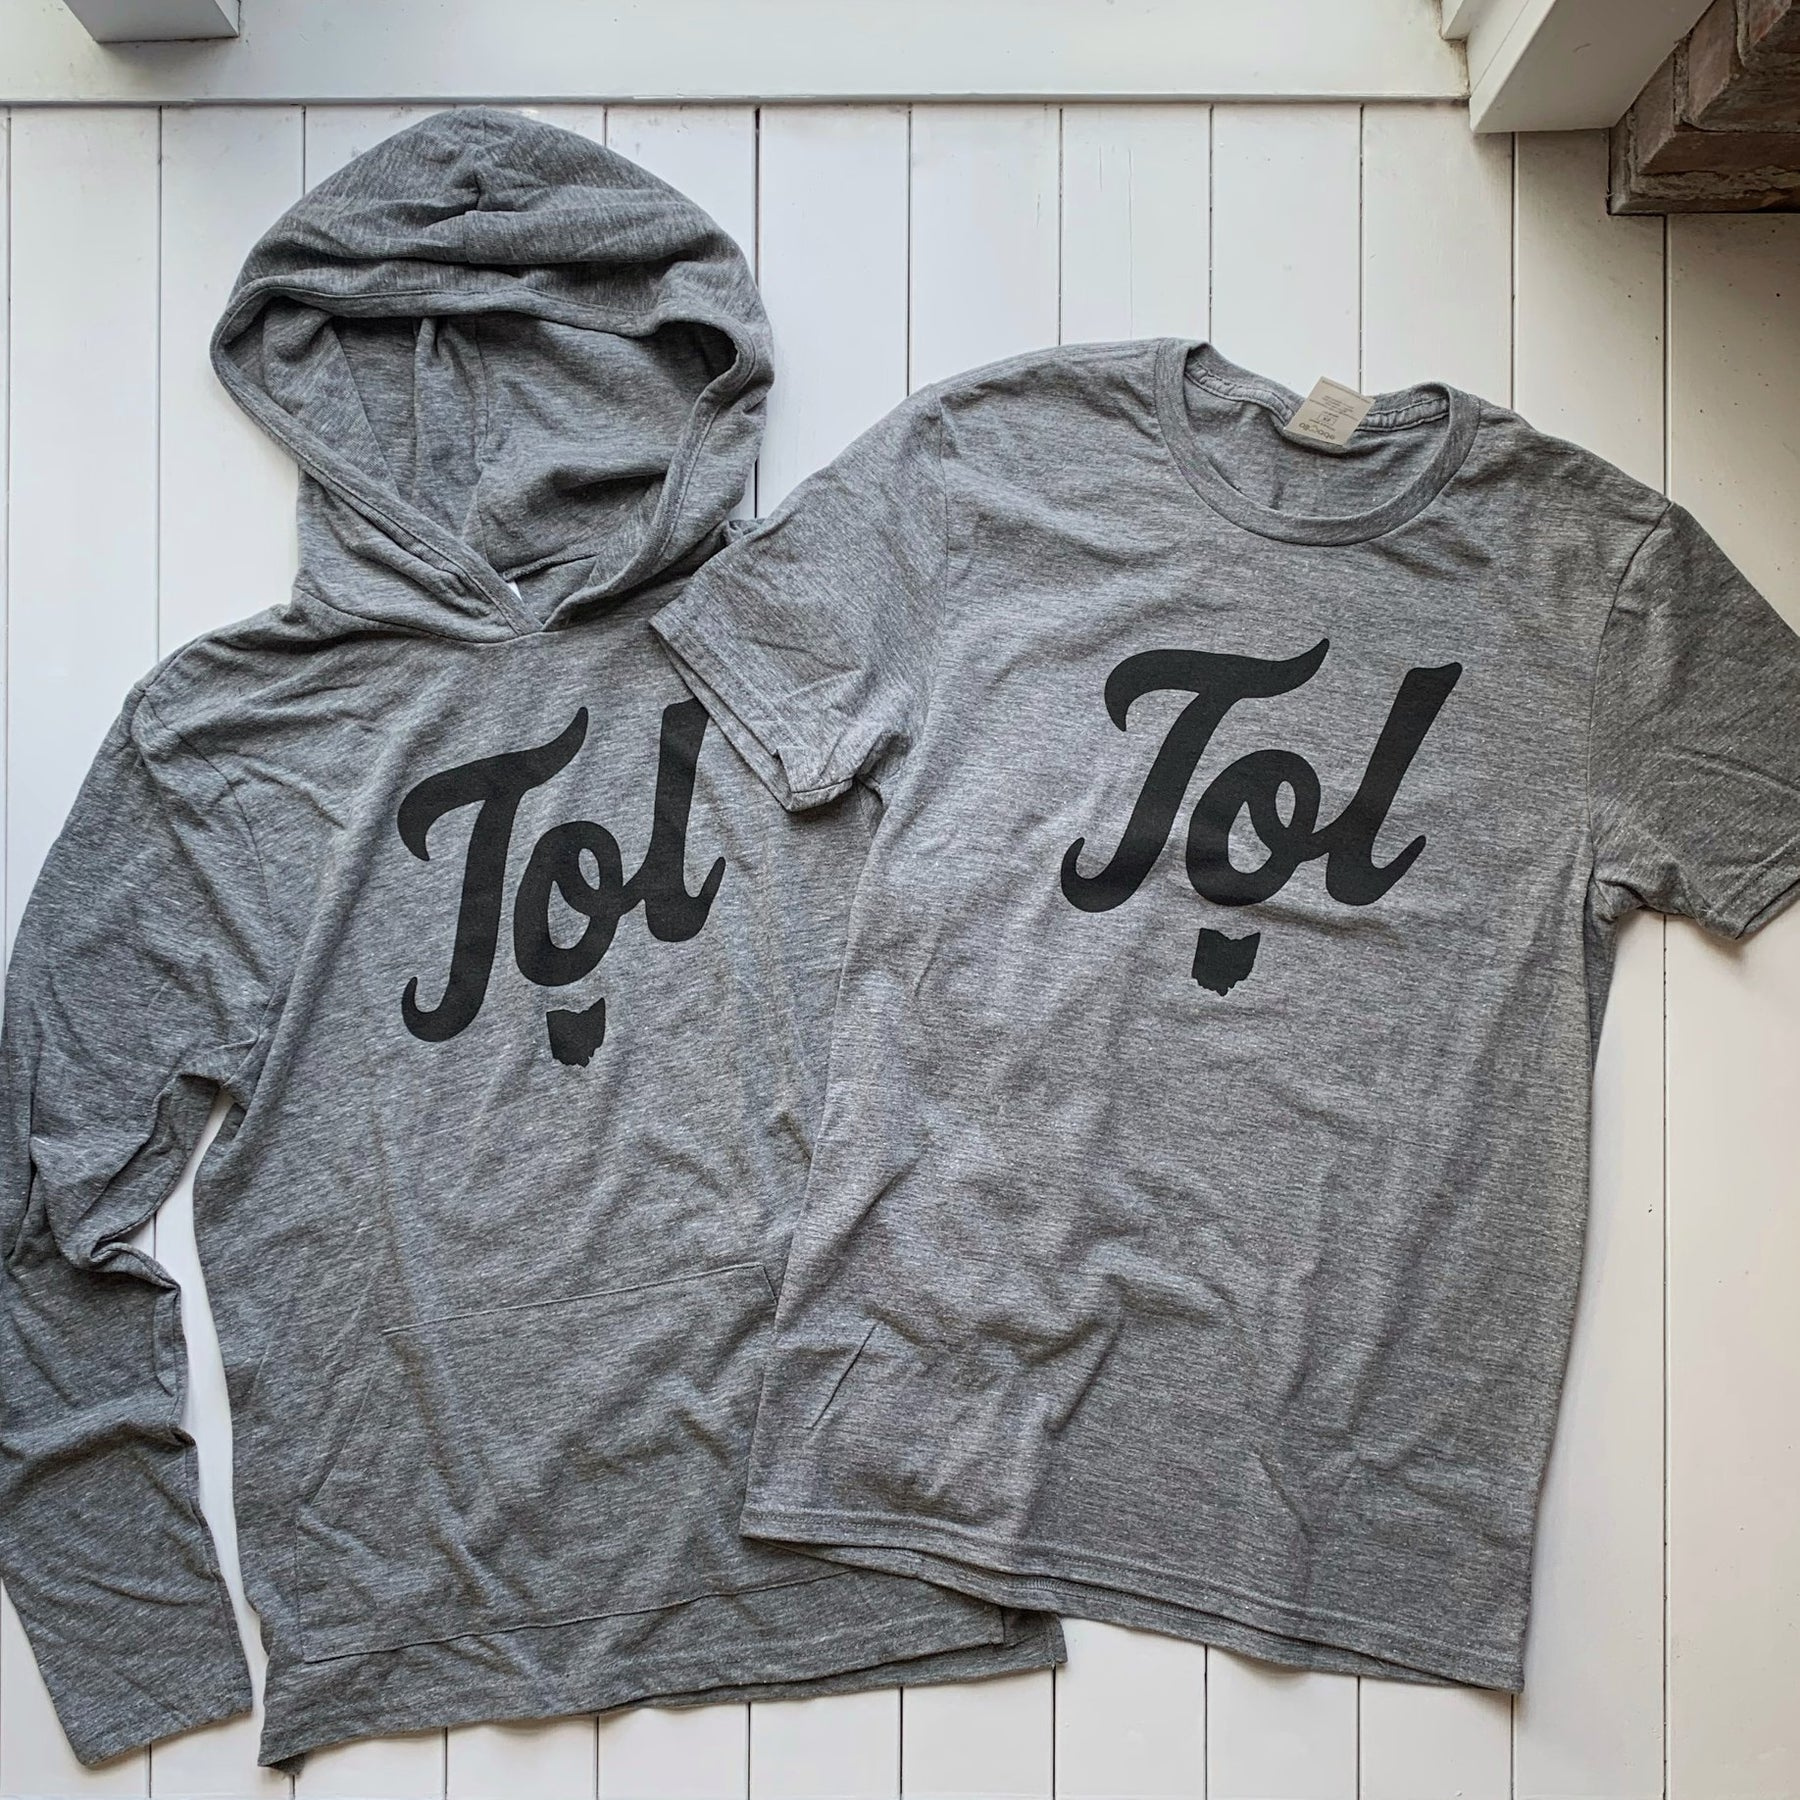 New Release: Tol Script Shirt and Long Sleeve Hoodie